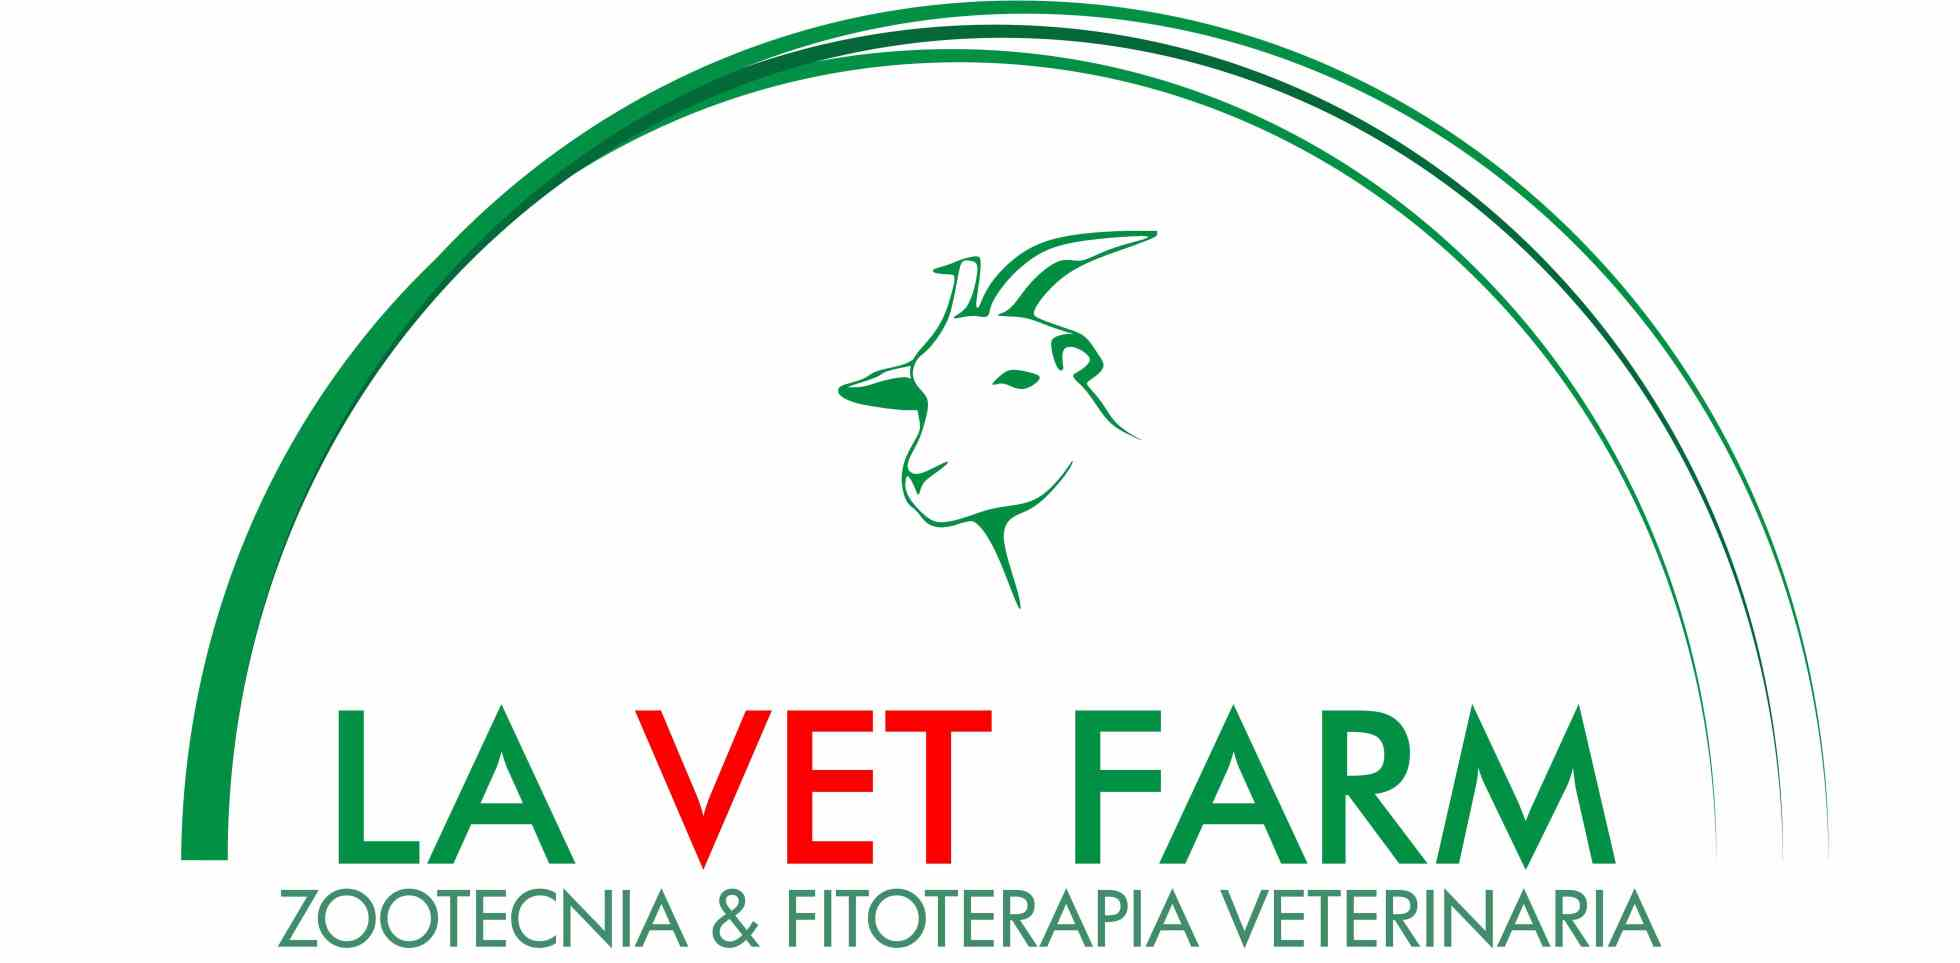 LAVETFARM – La Veterinaria Farm